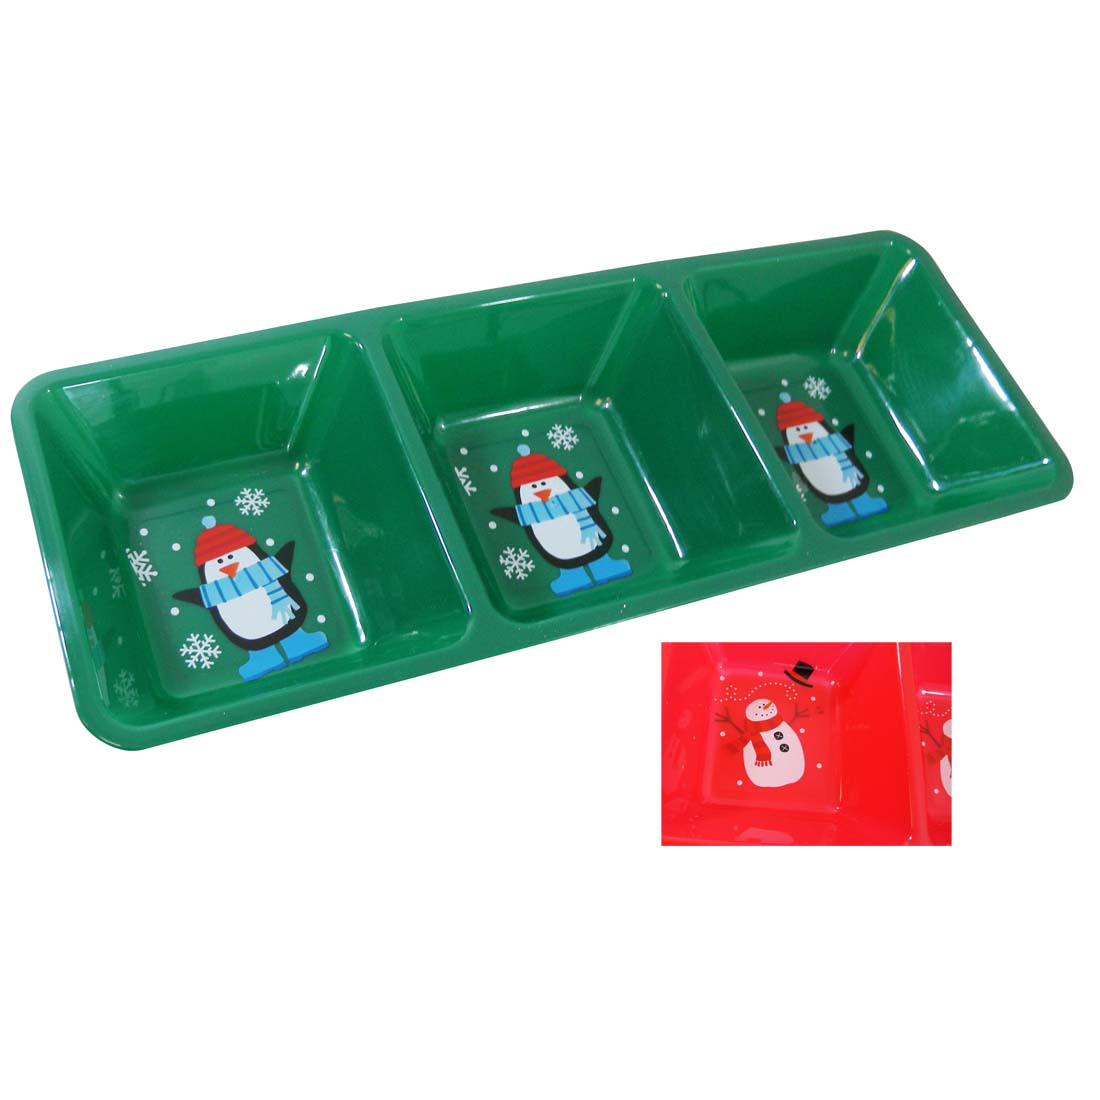 View CHRISTMAS TRAY 3 COMPARTMENT 16 X 6 INCH ASTD COLORS